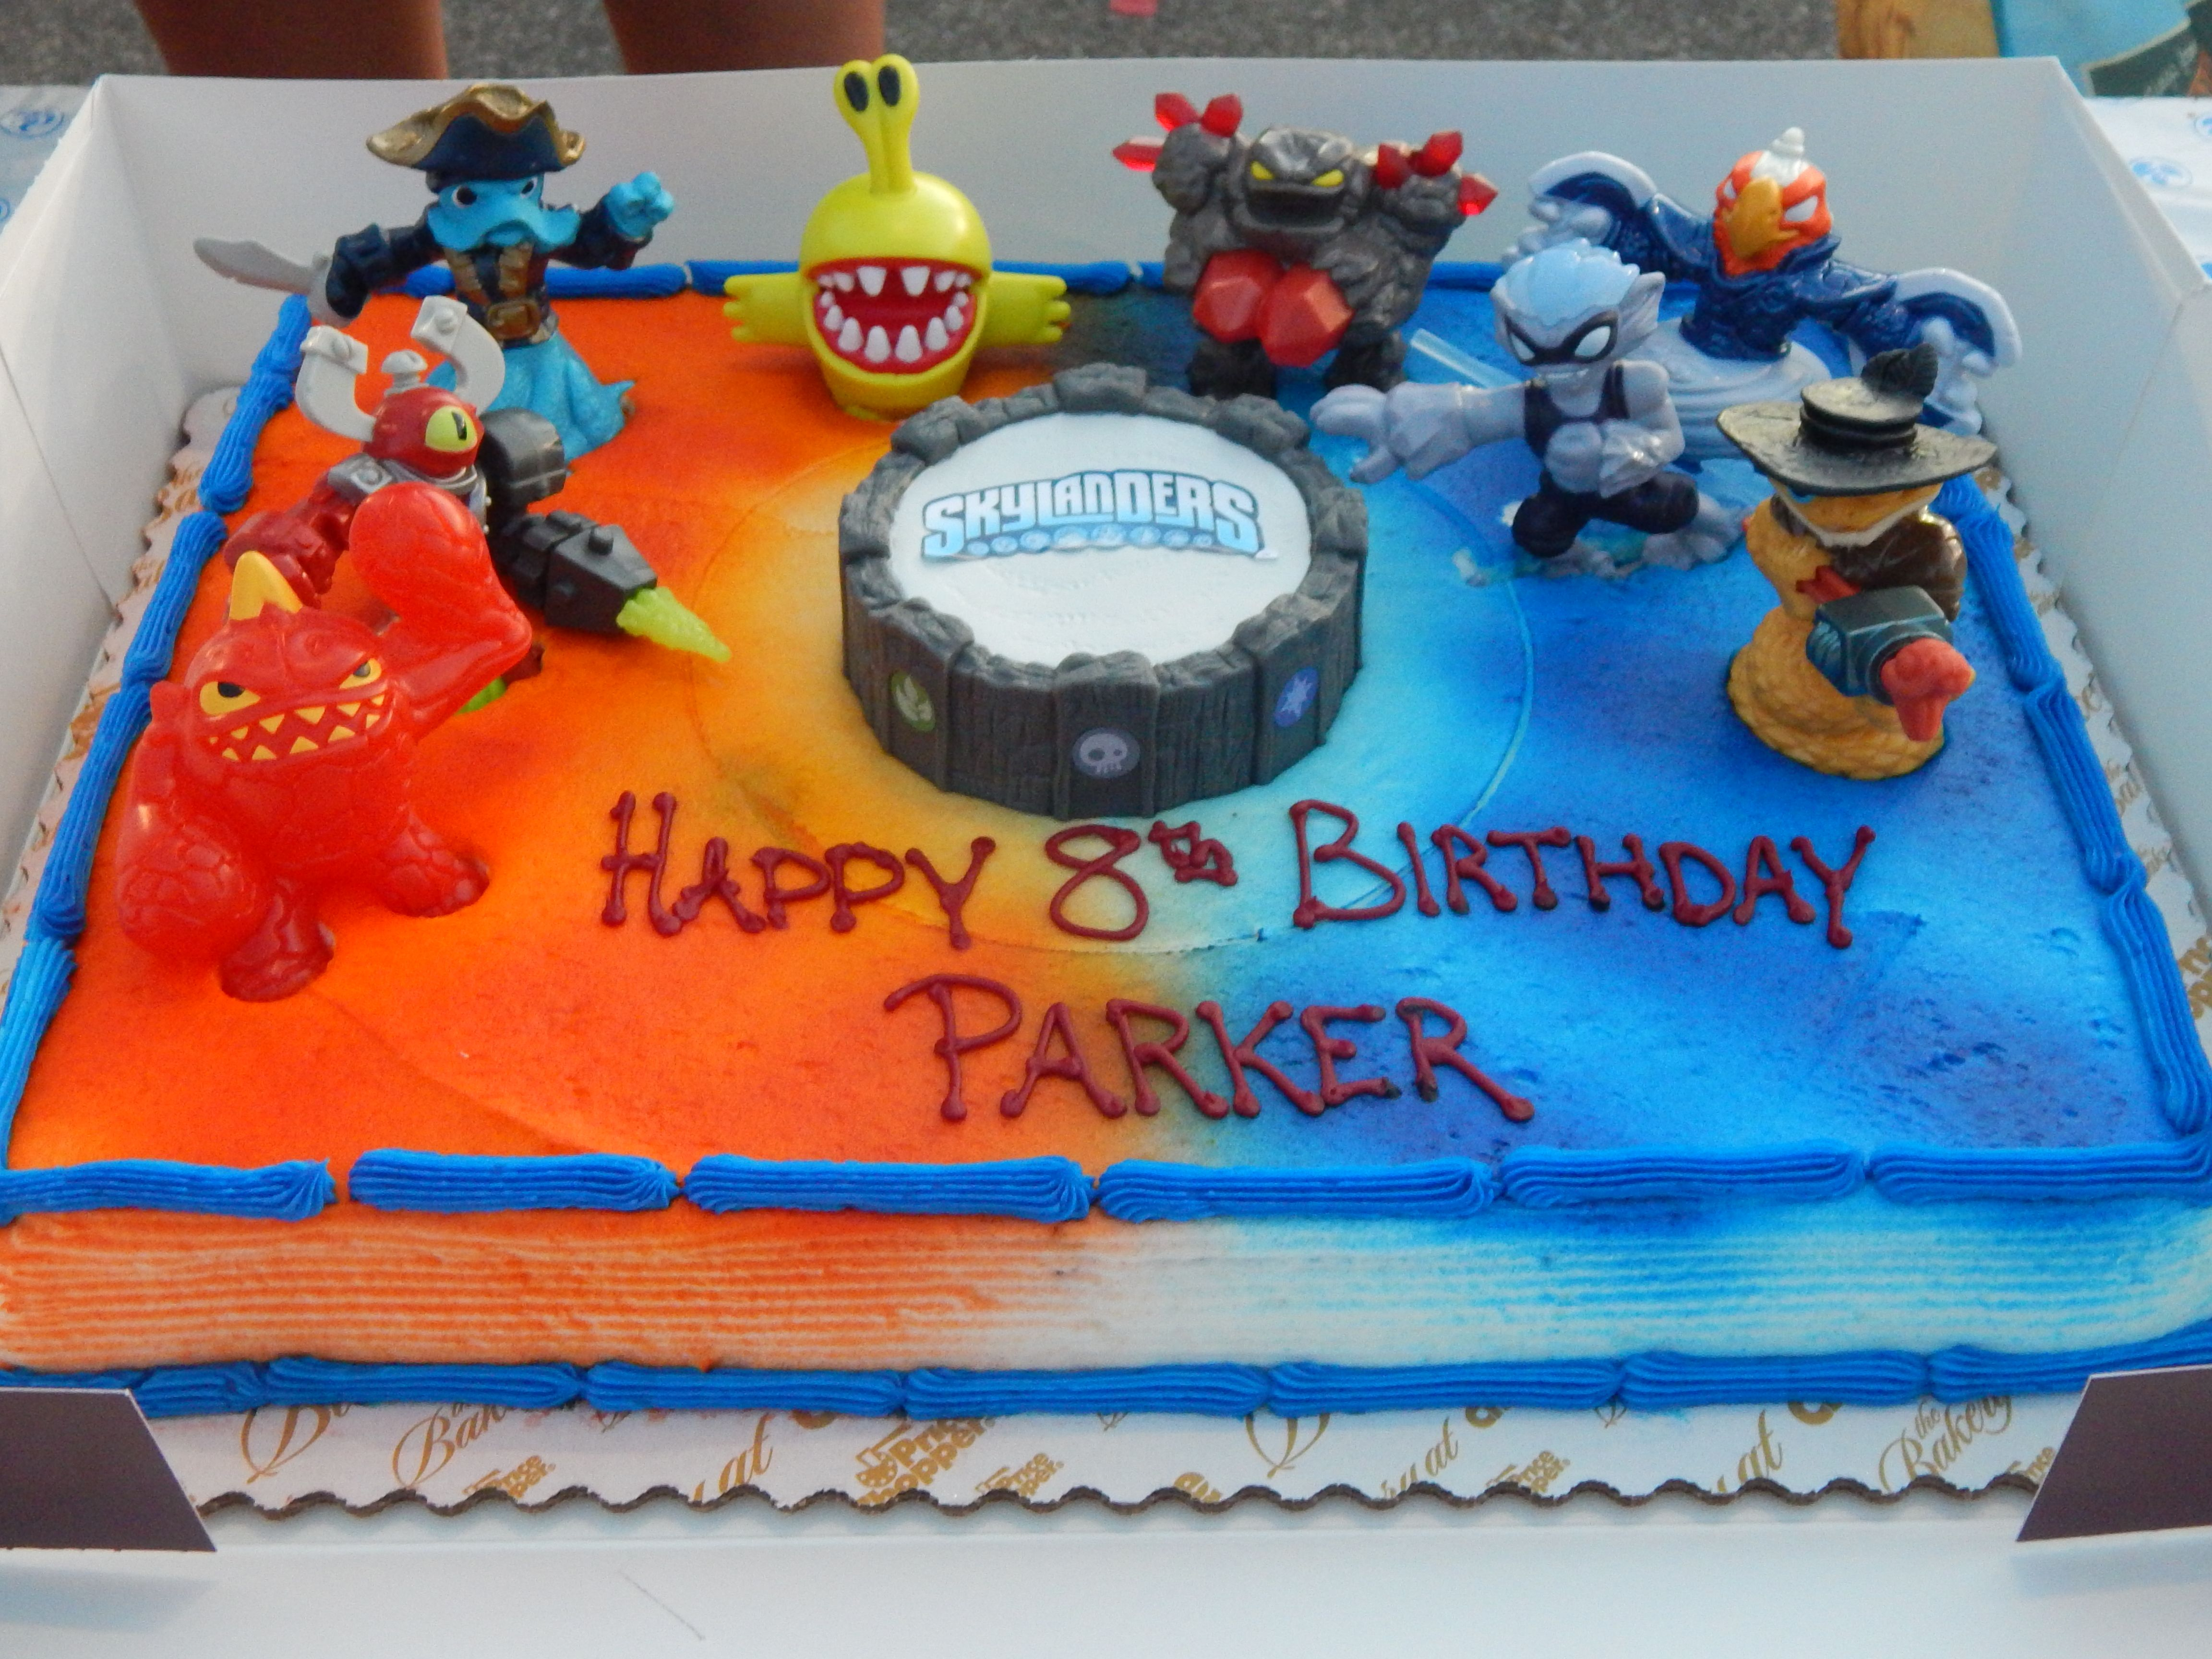 Another pic of my sons Skylanders birthday cake Portal was from a